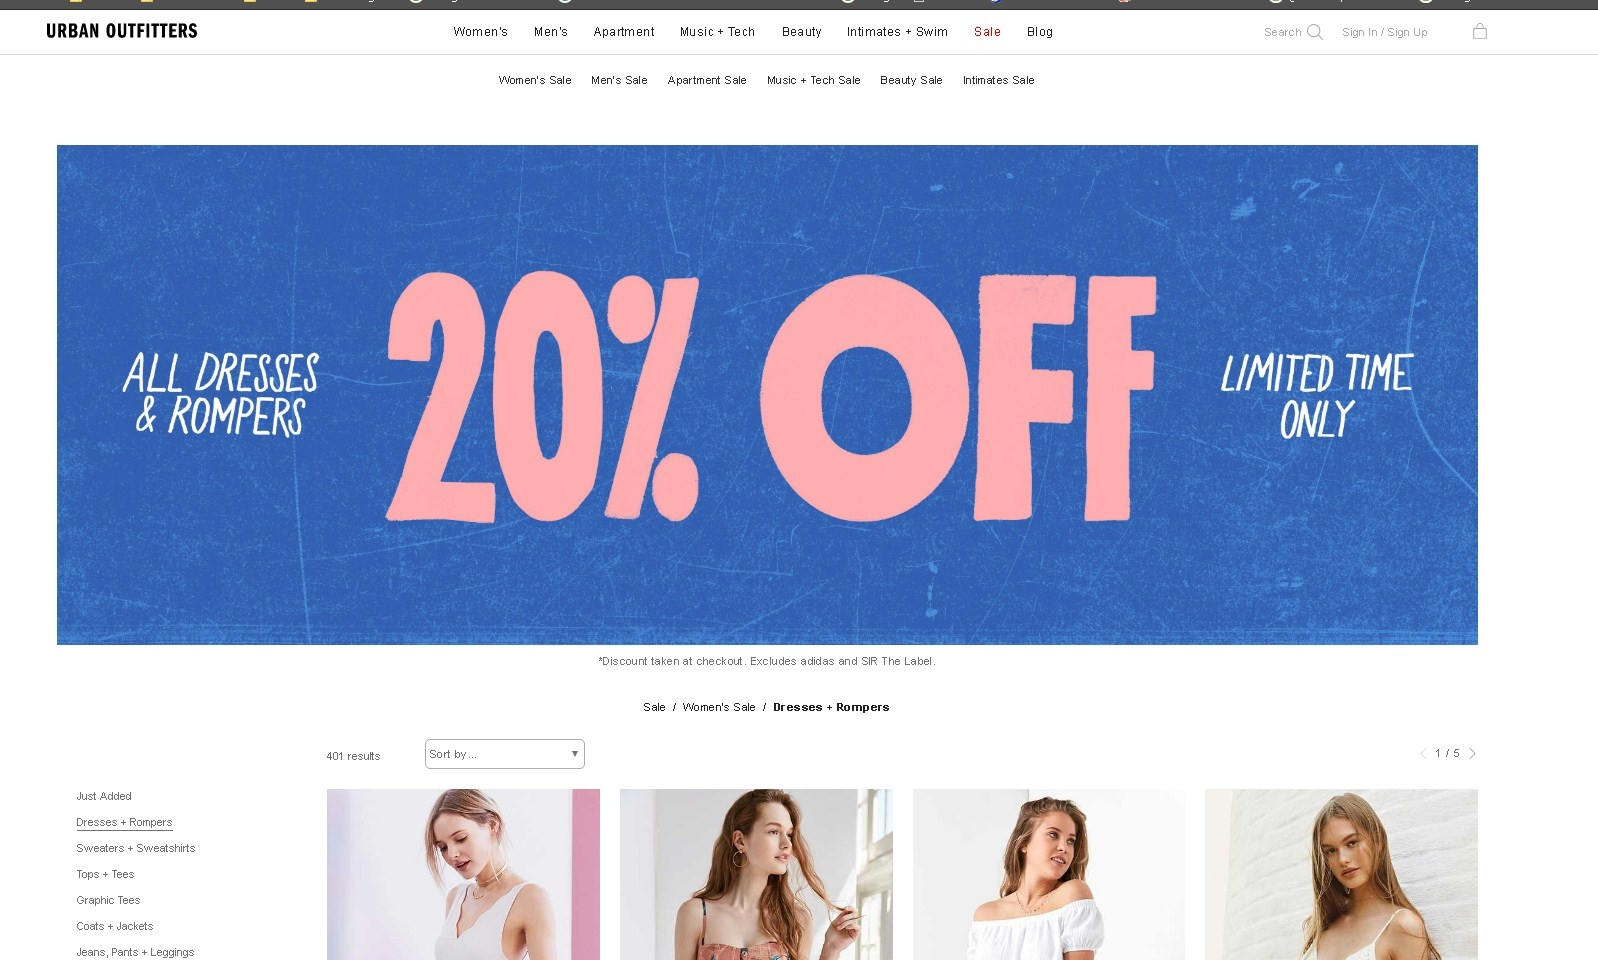 Urban outfitters coupons 20 off